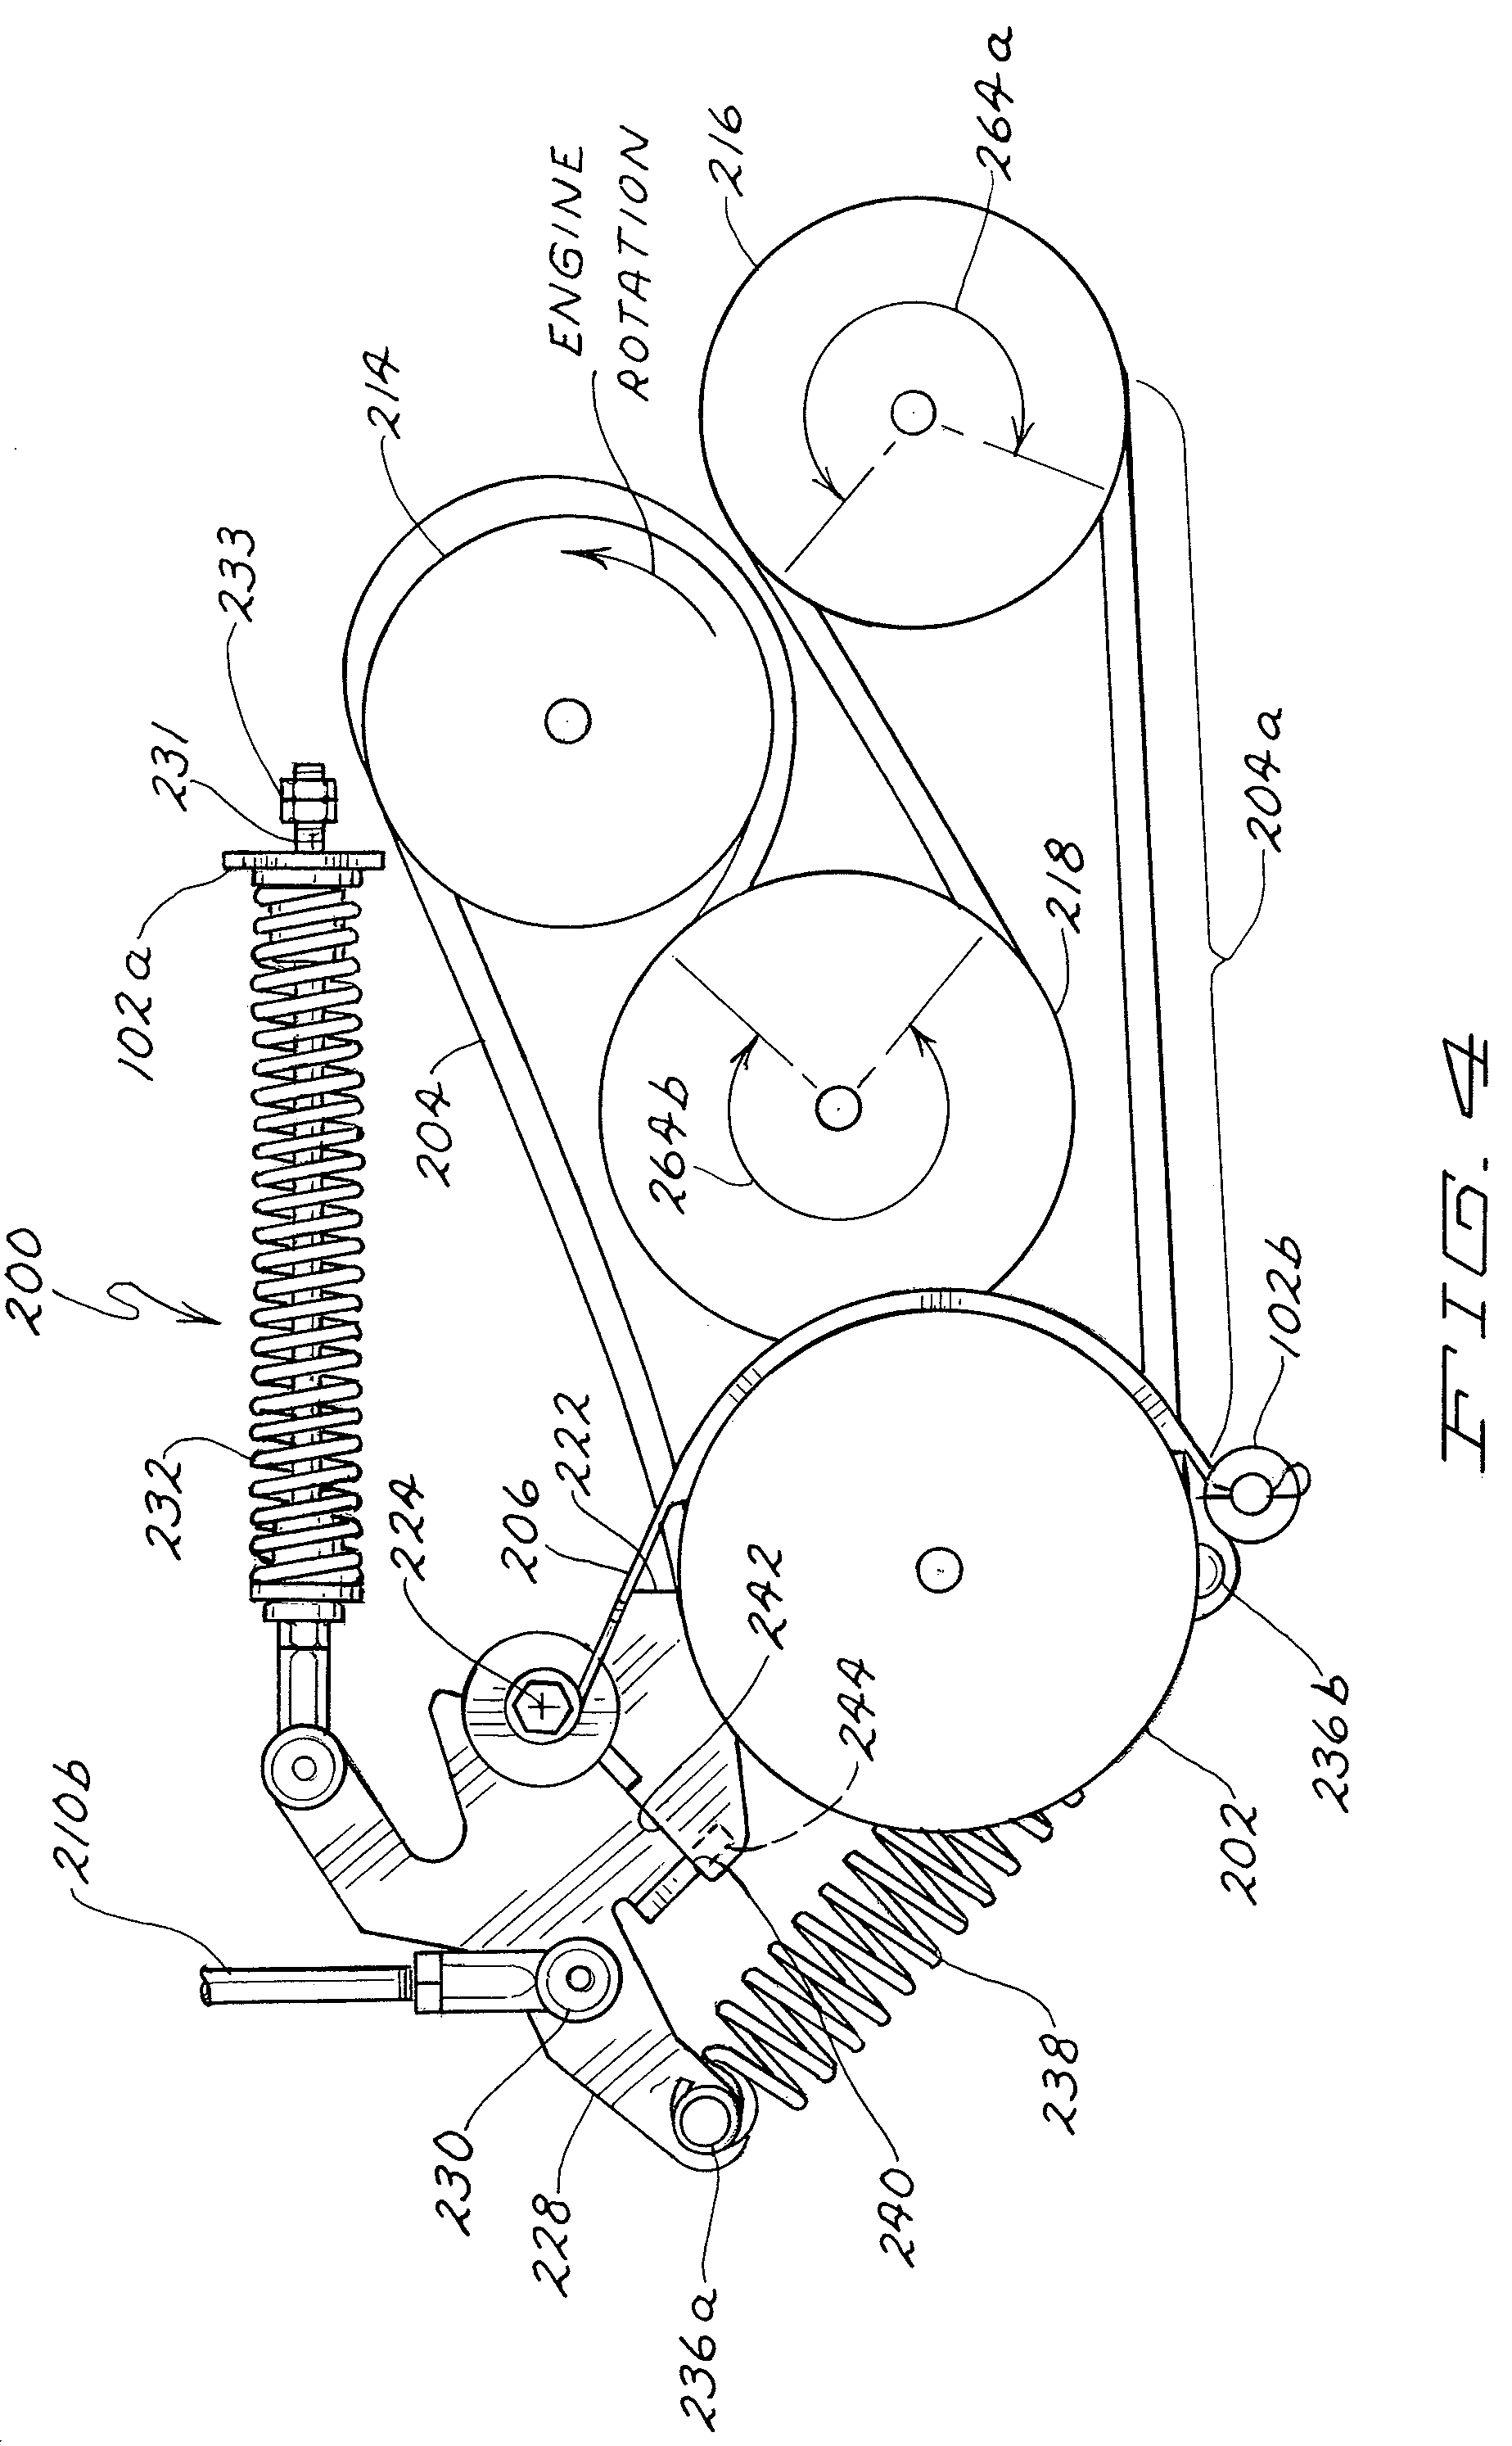 Patent US7553248 - Belt drive system incorporating fixed brake ...